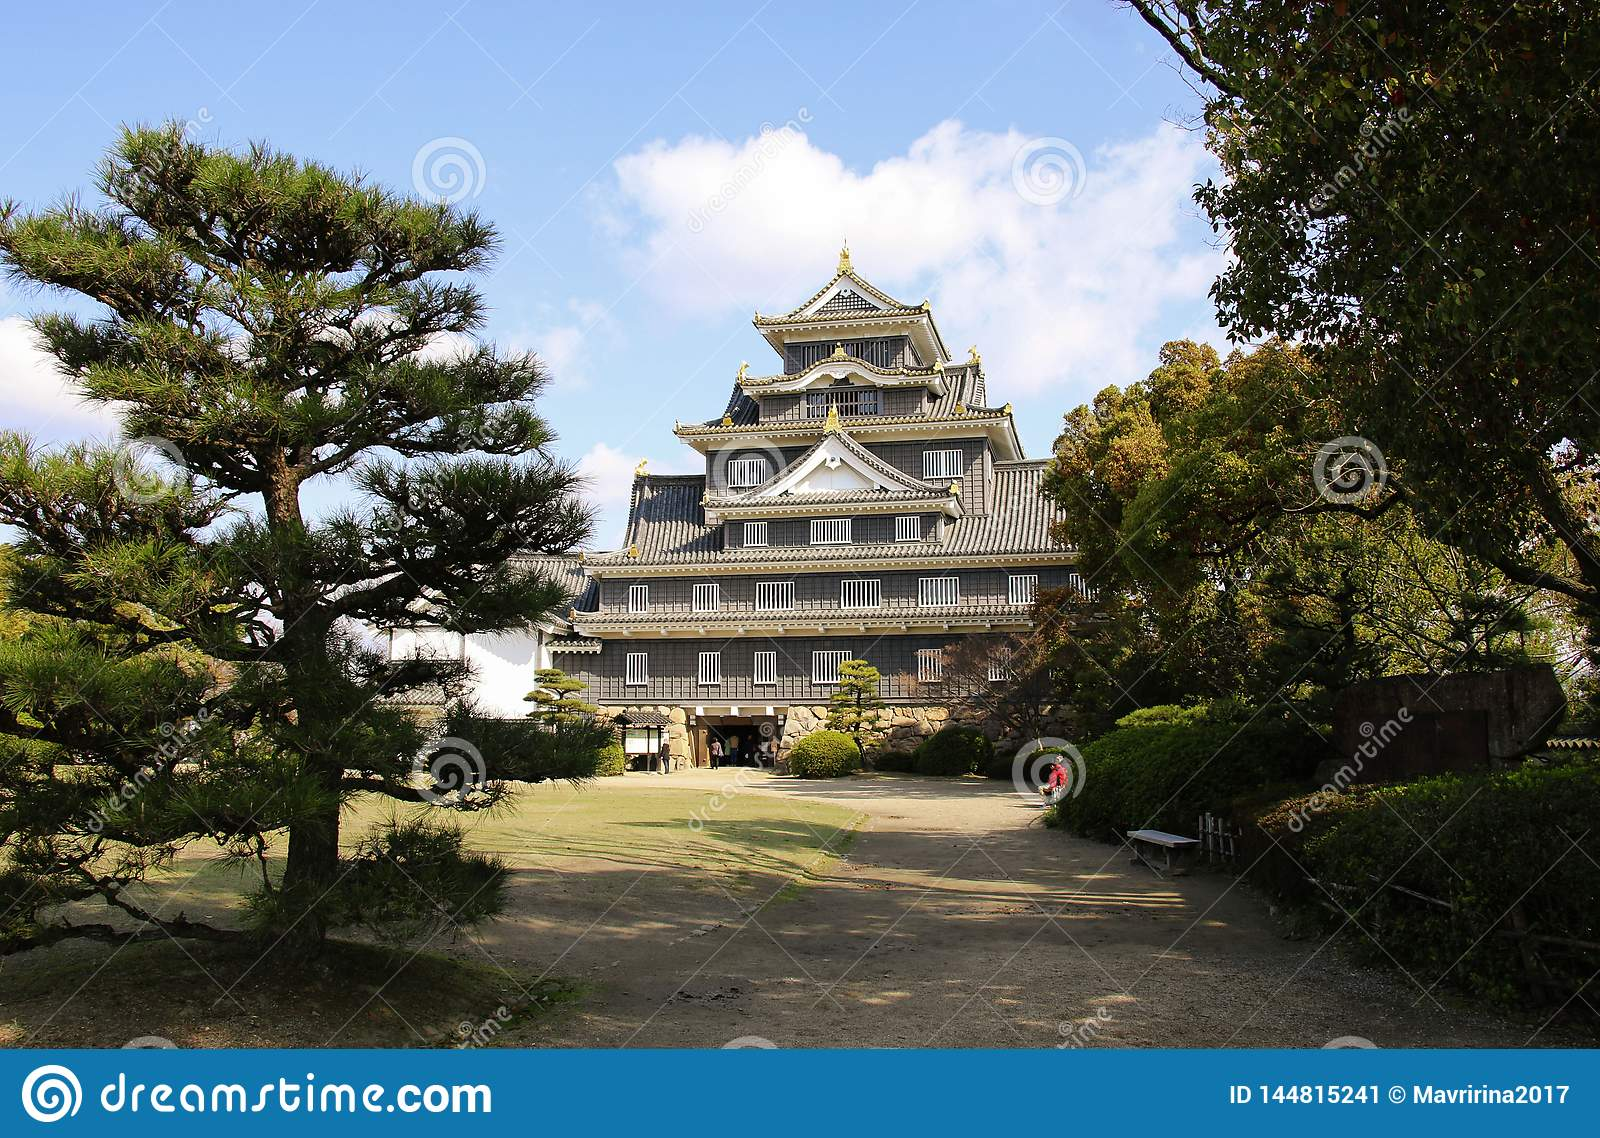 Okayama castle known as `crow castle` due to its black exterior is a Japanese castle in the city of Okayama, Japan